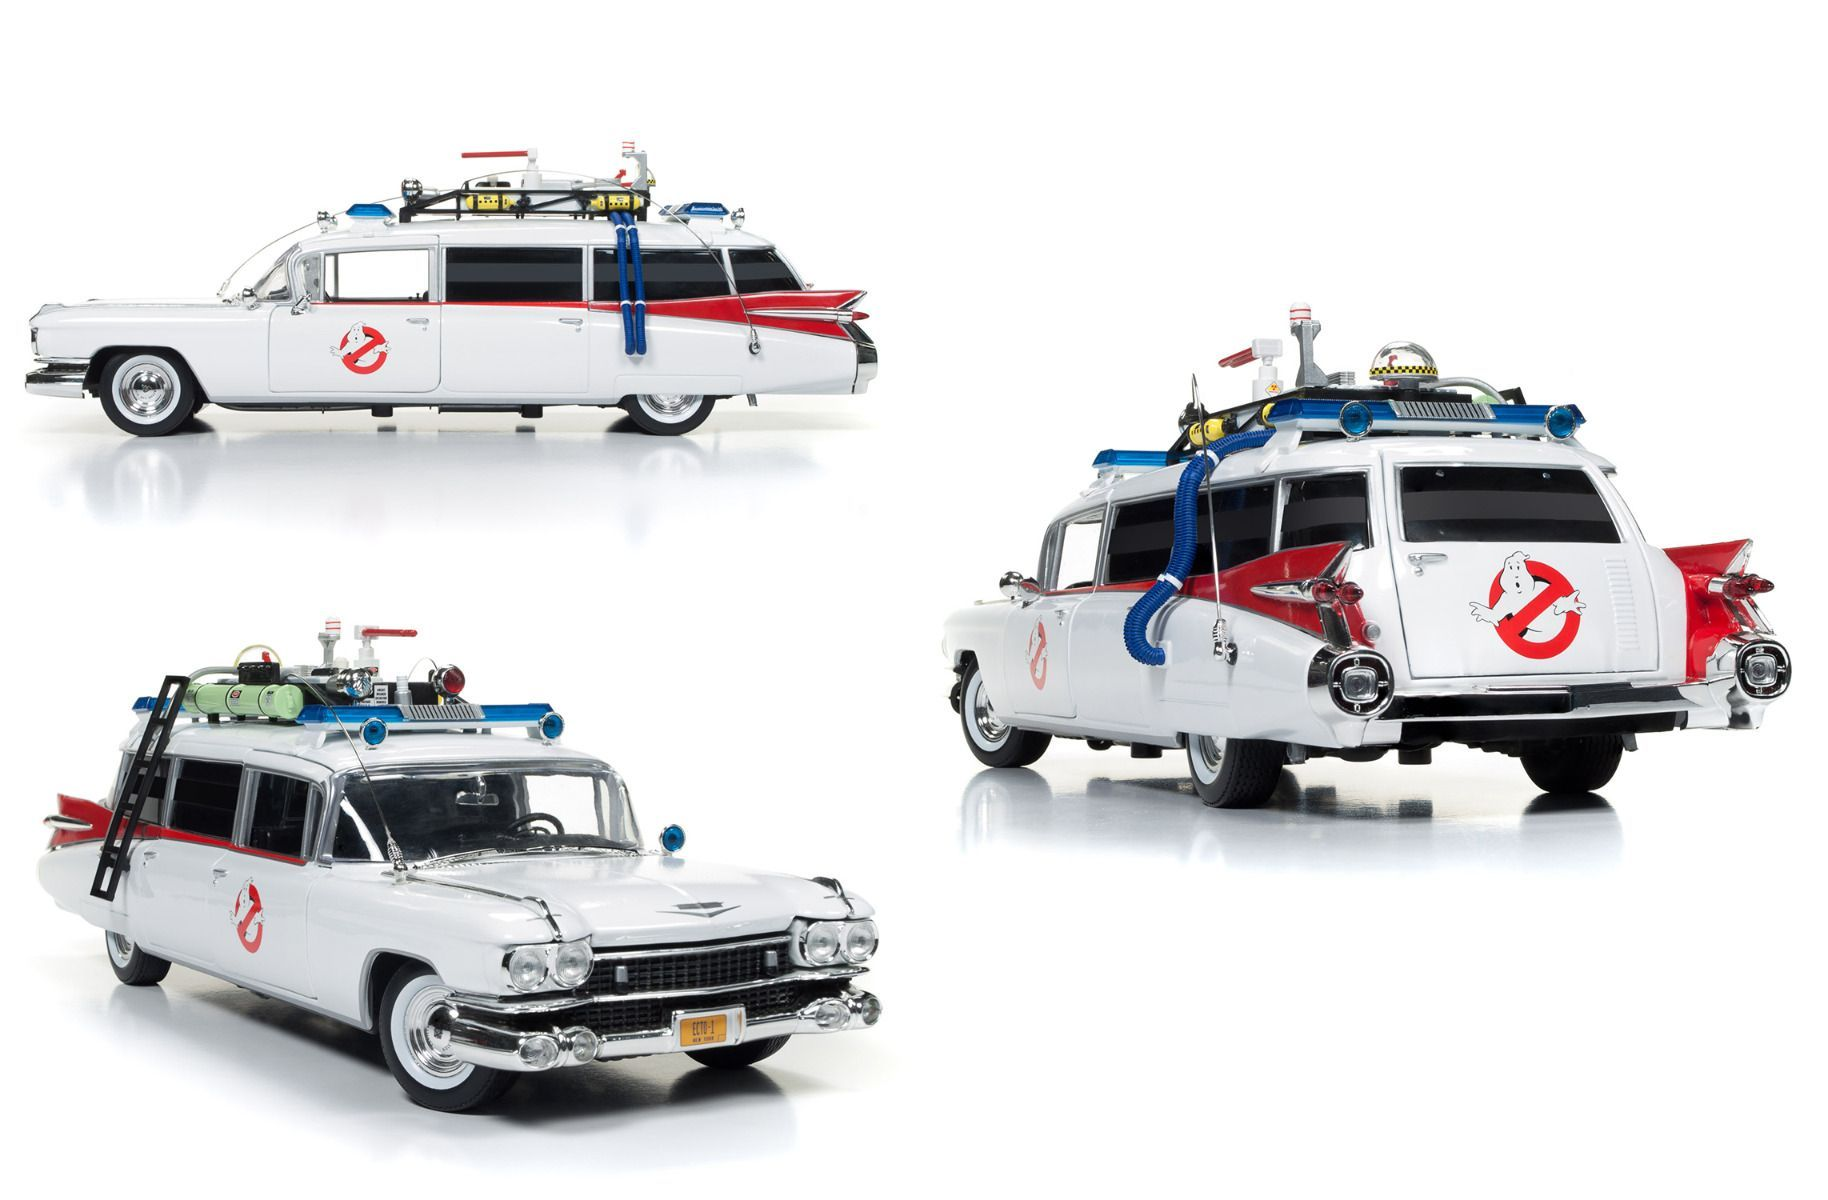 Ghostbusters toys car  Ghostbusters Ecto DieCast  Scale Vehicle  Movie Replicas